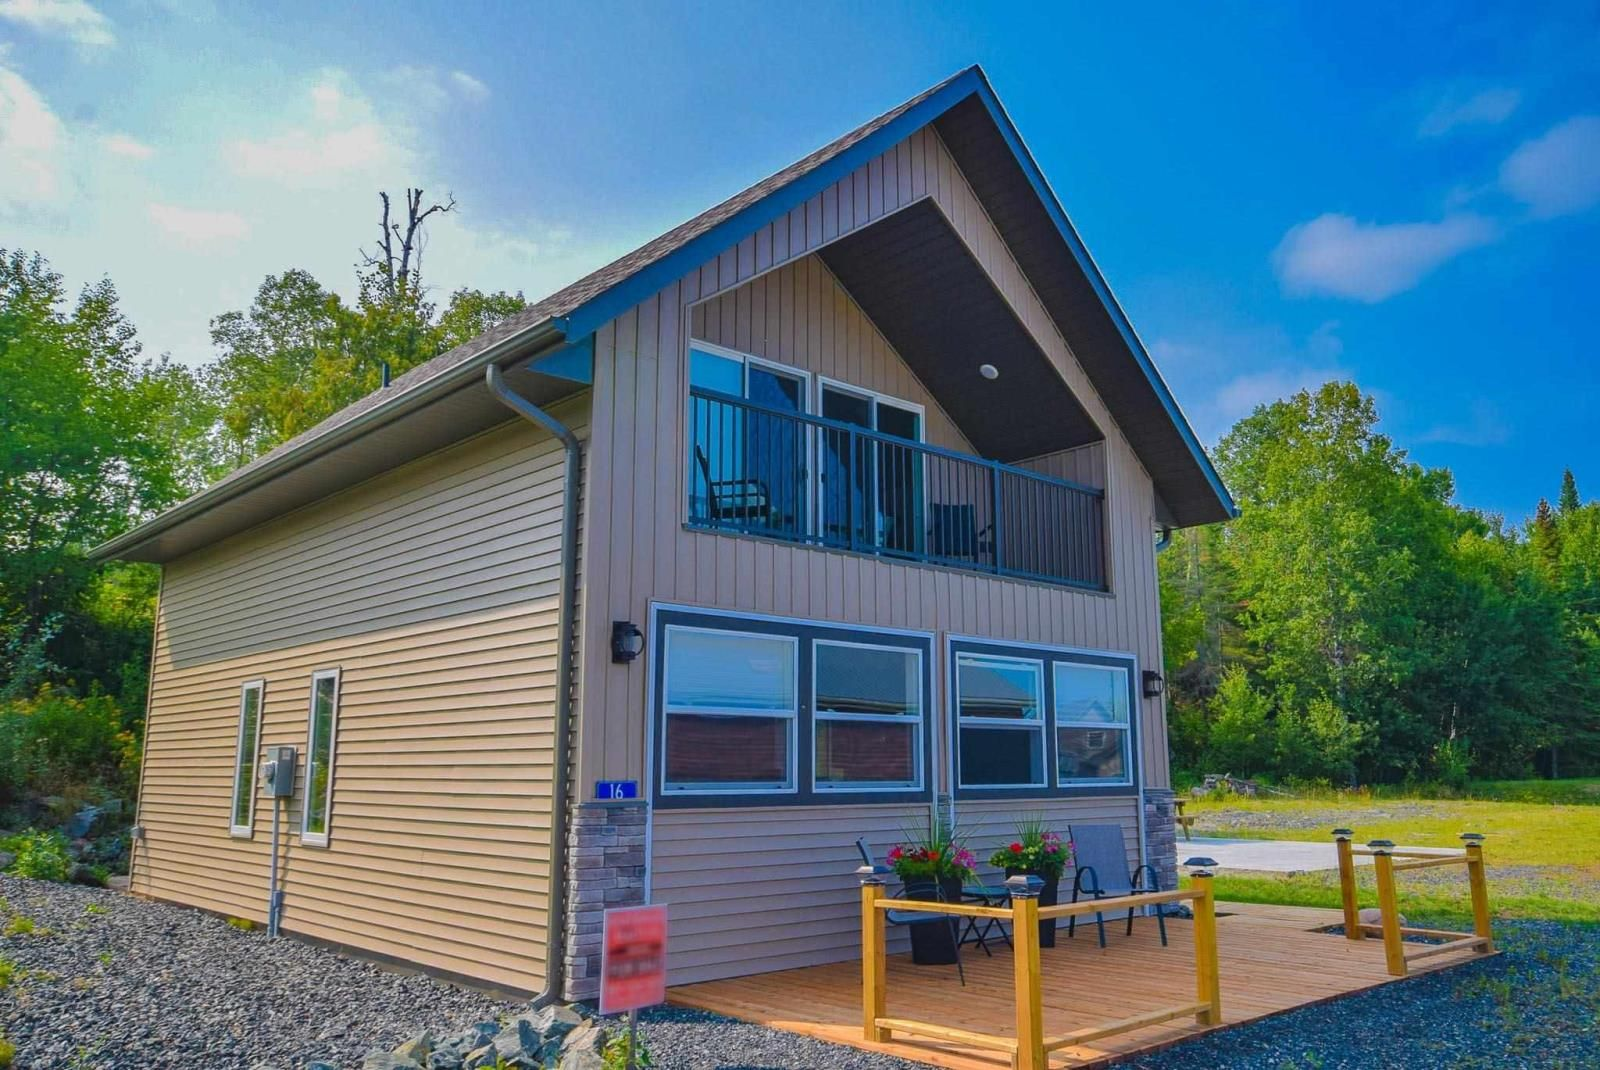 Main Photo: 16 Au Lac Retreats Crescent in Sioux Narrows: House for sale : MLS®# TB212424